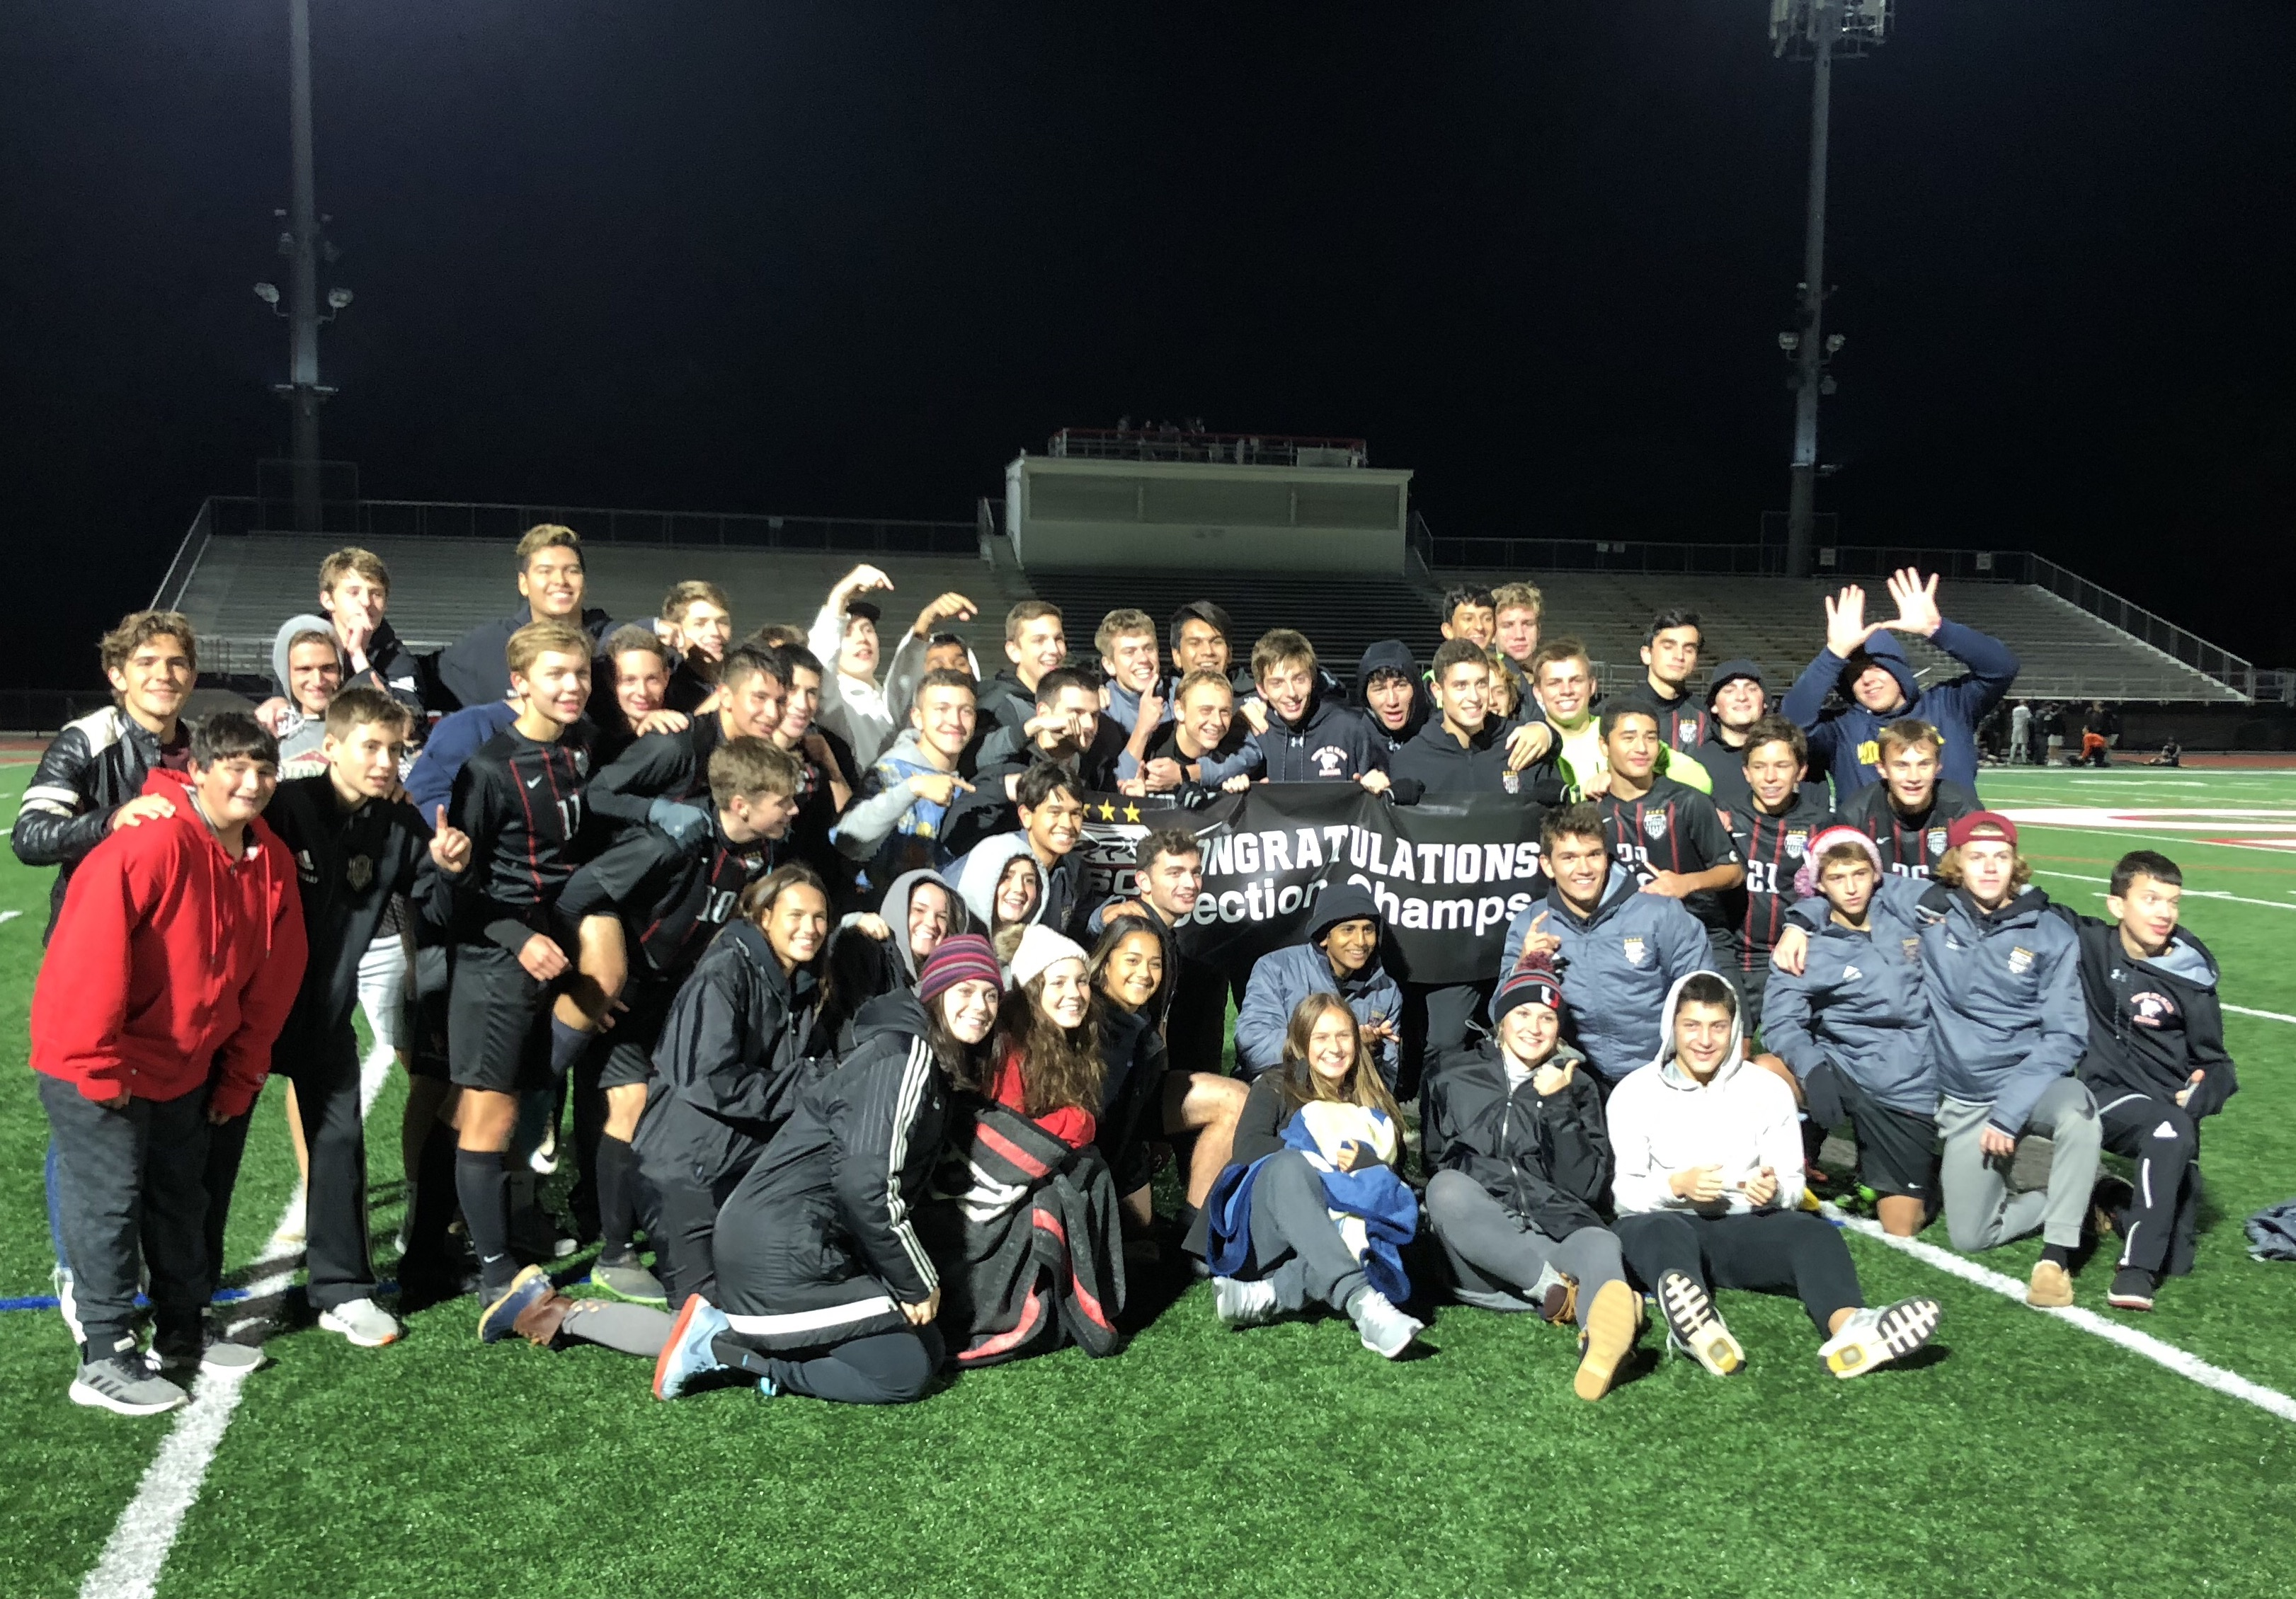 USC Boys Soccer – Section Champions